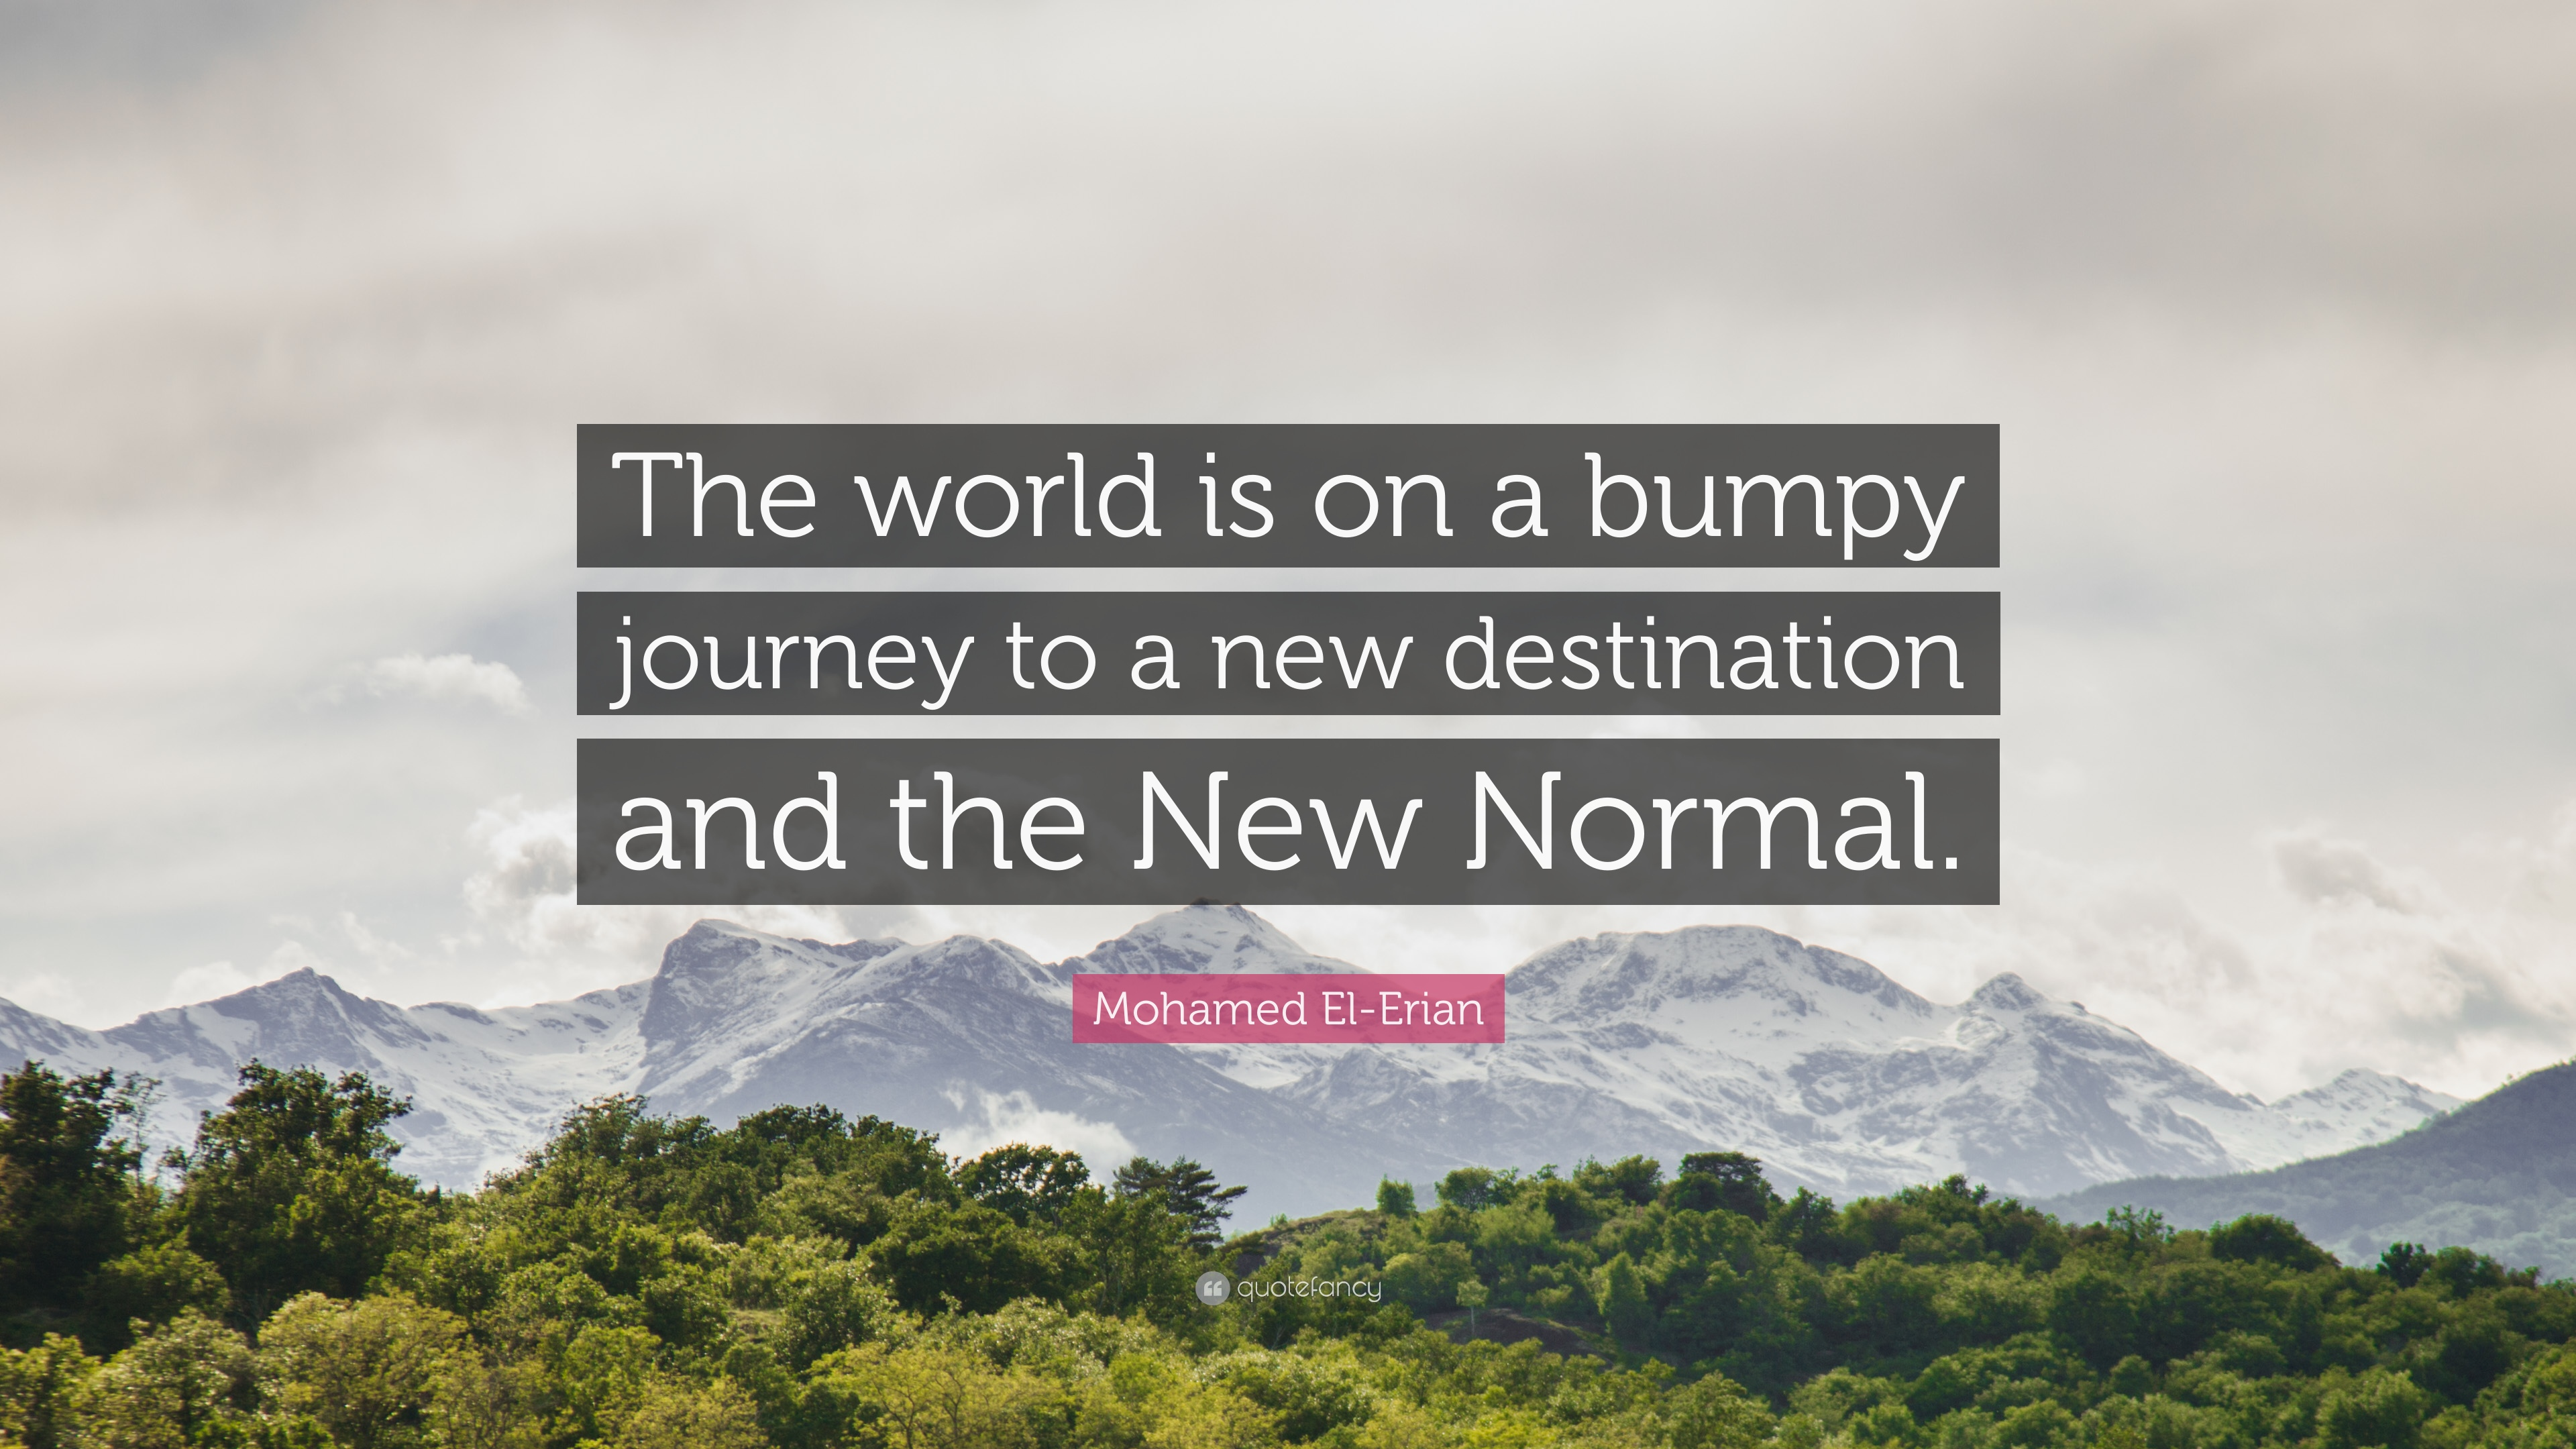 Mohamed El Erian Quote The World Is On A Bumpy Journey To A New